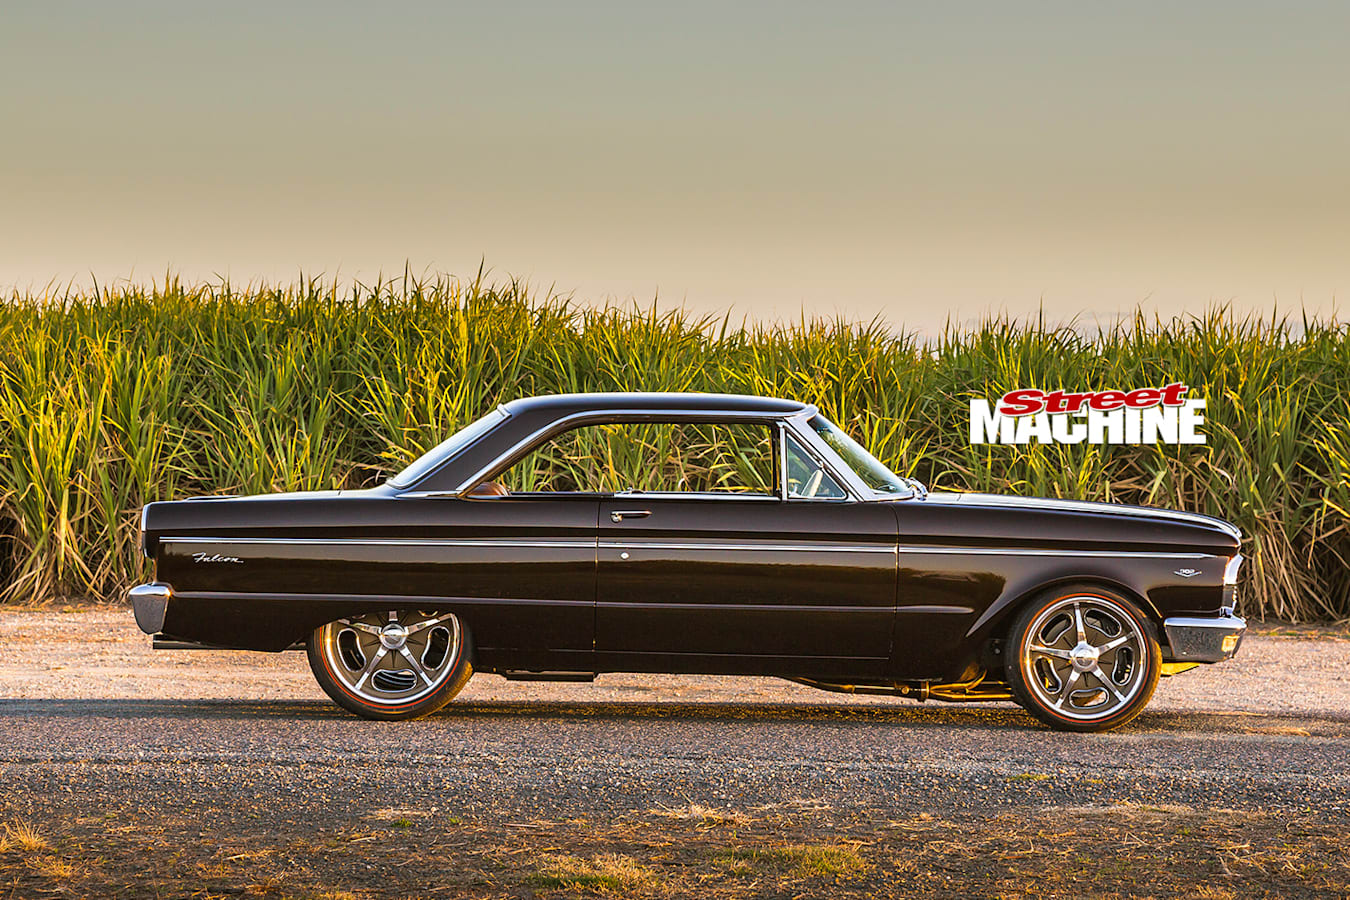 Ford -falcon -xp -side -view